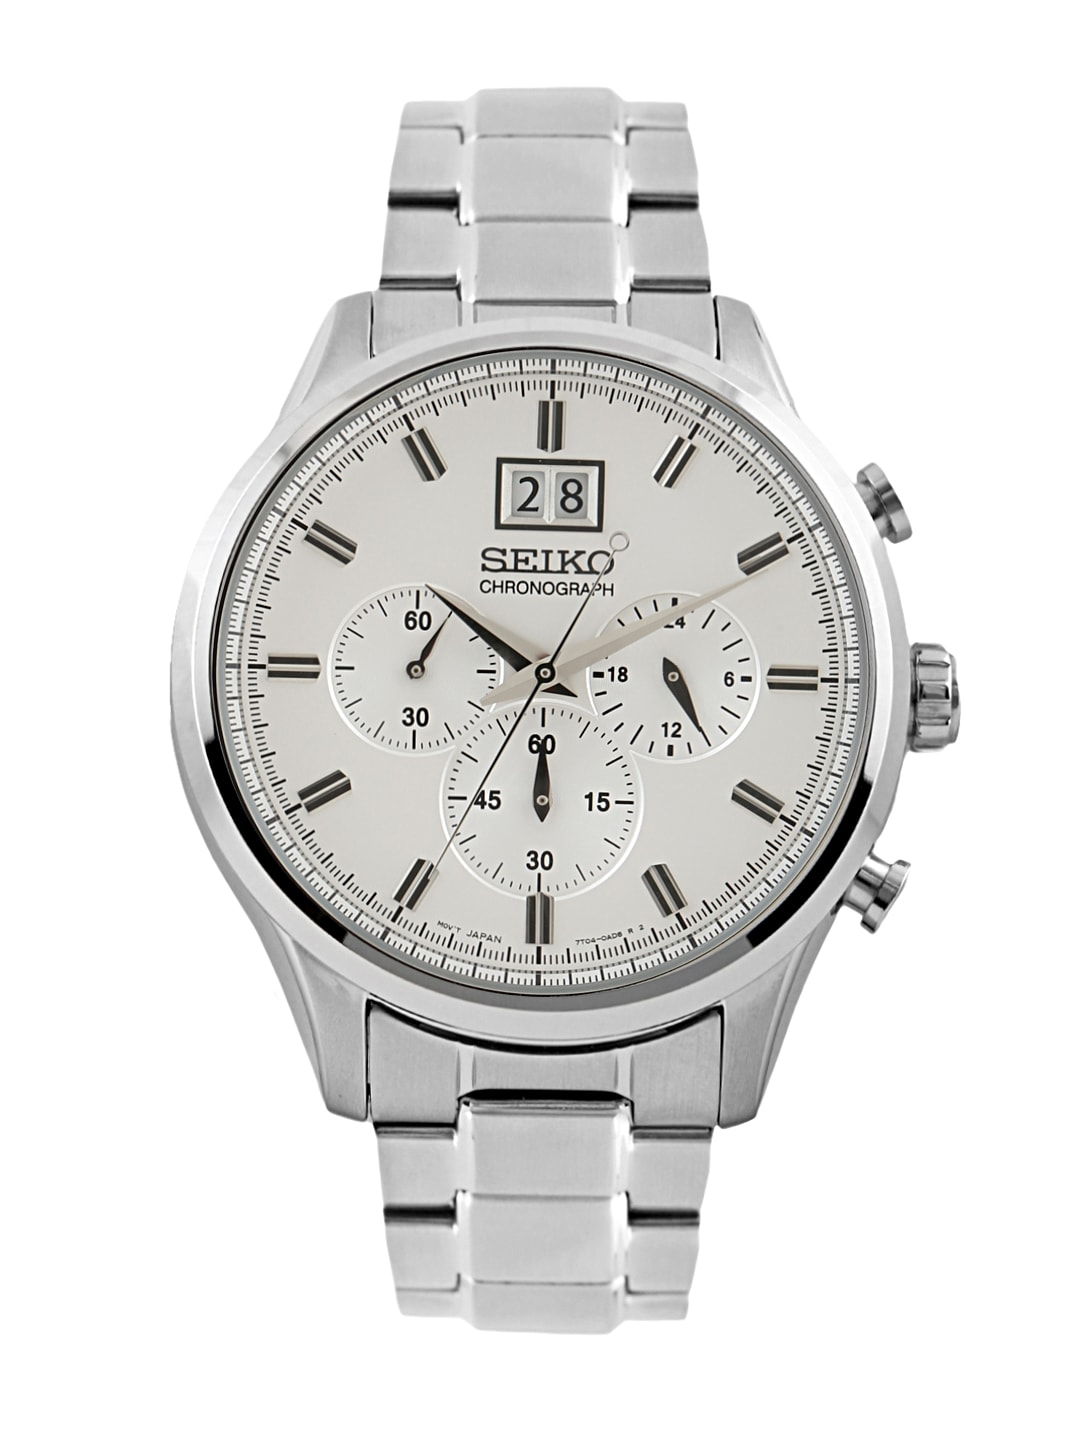 SEIKO Men Silver-Toned Chronograph Dial Watch SPC079P1